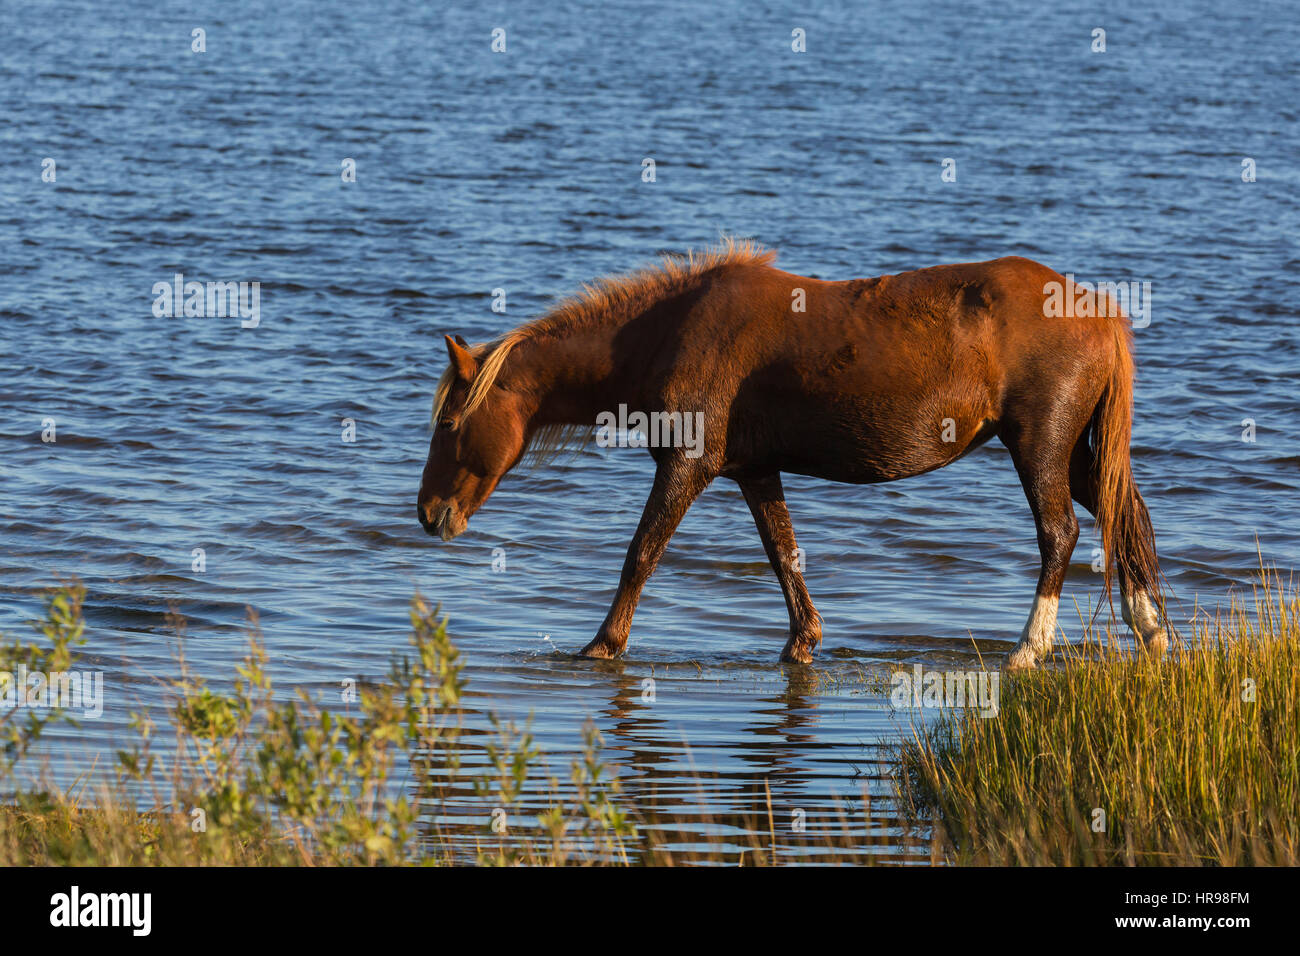 Assateague Pony (Equus caballus) wading in water in Assateague Island National Seashore, MD, USA - Stock Image